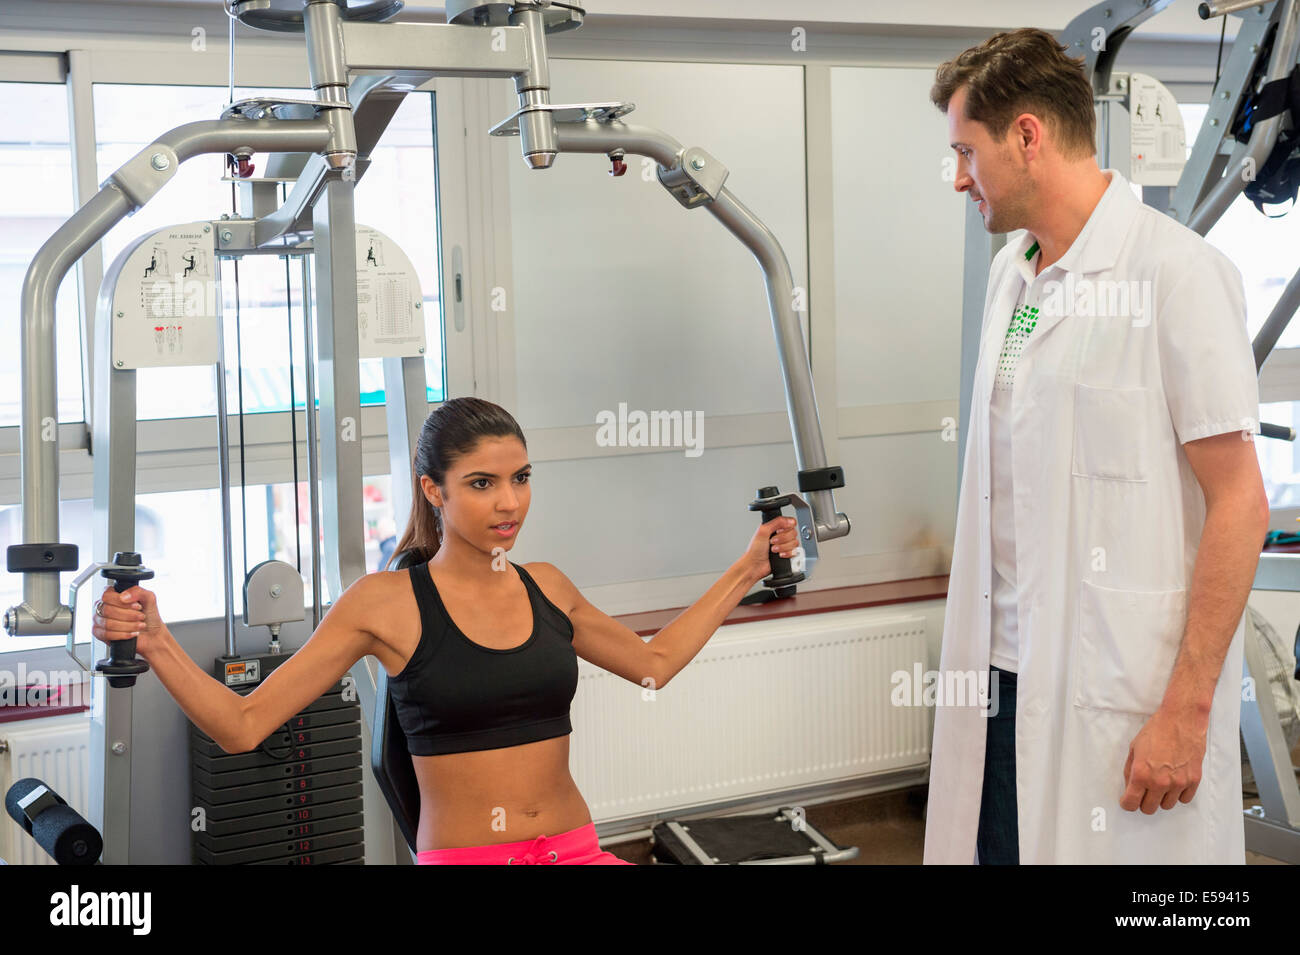 Male instructor guiding a woman in exercising - Stock Image